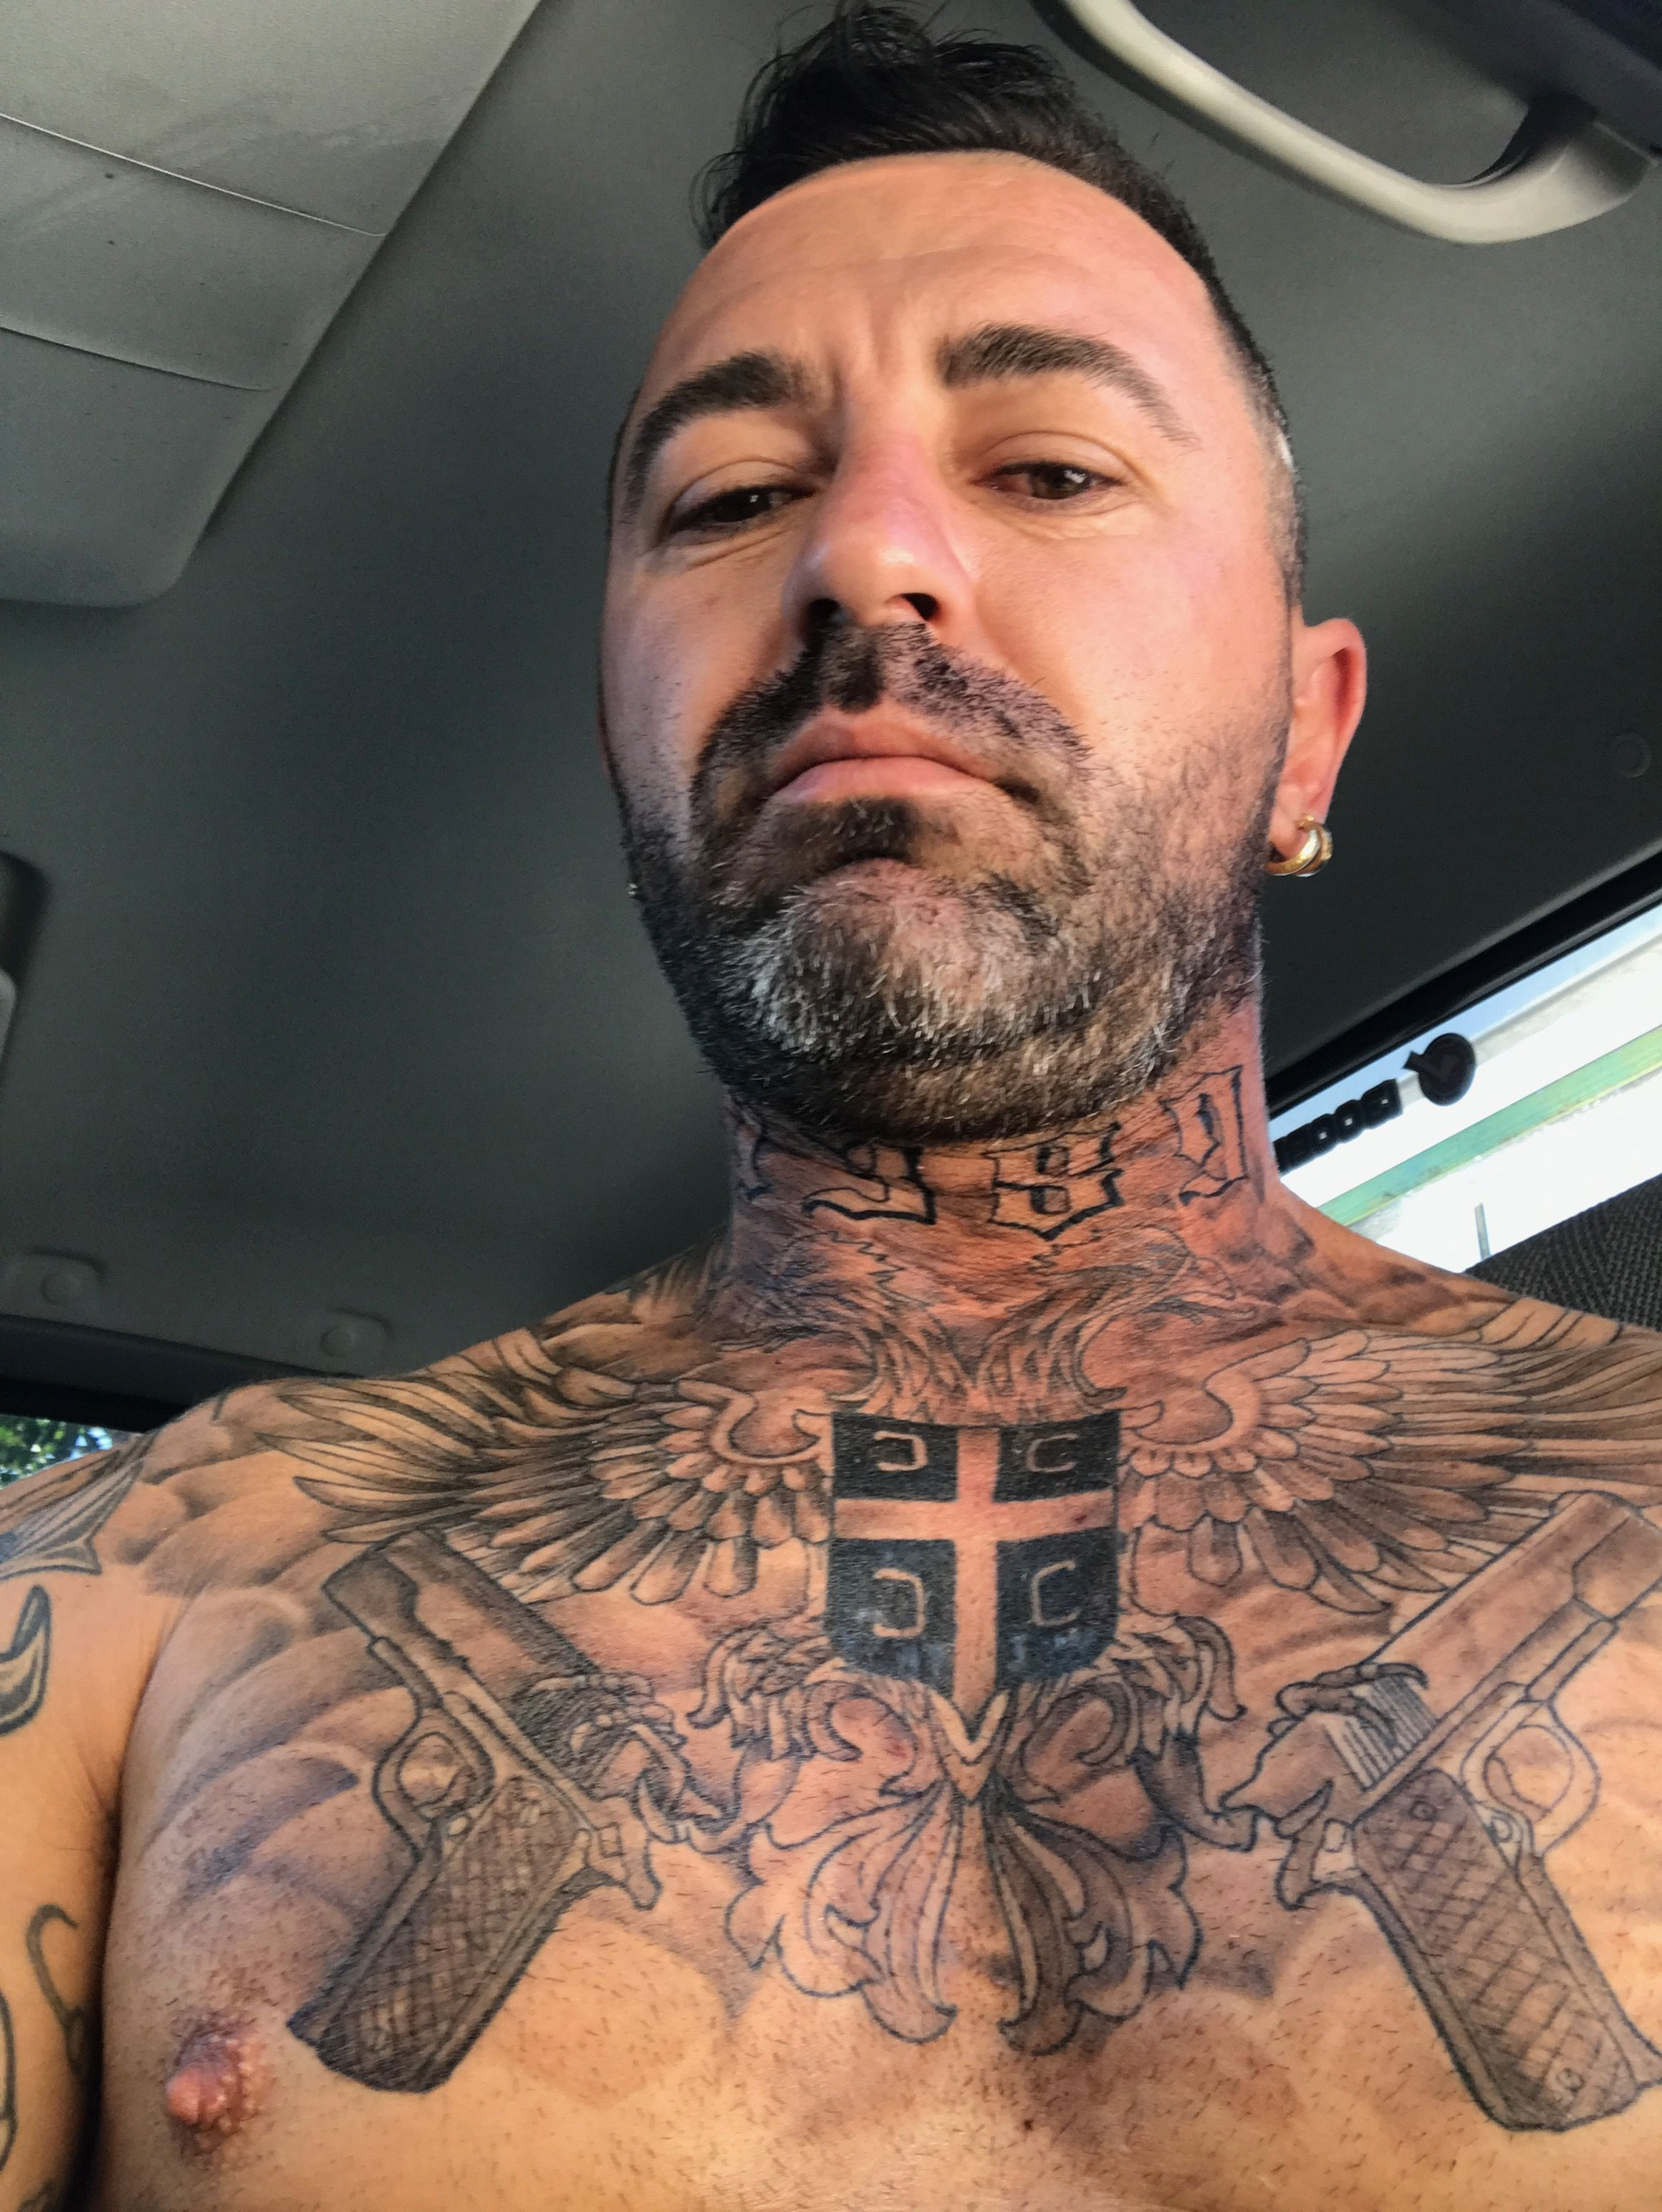 Serbian mafia tattoos